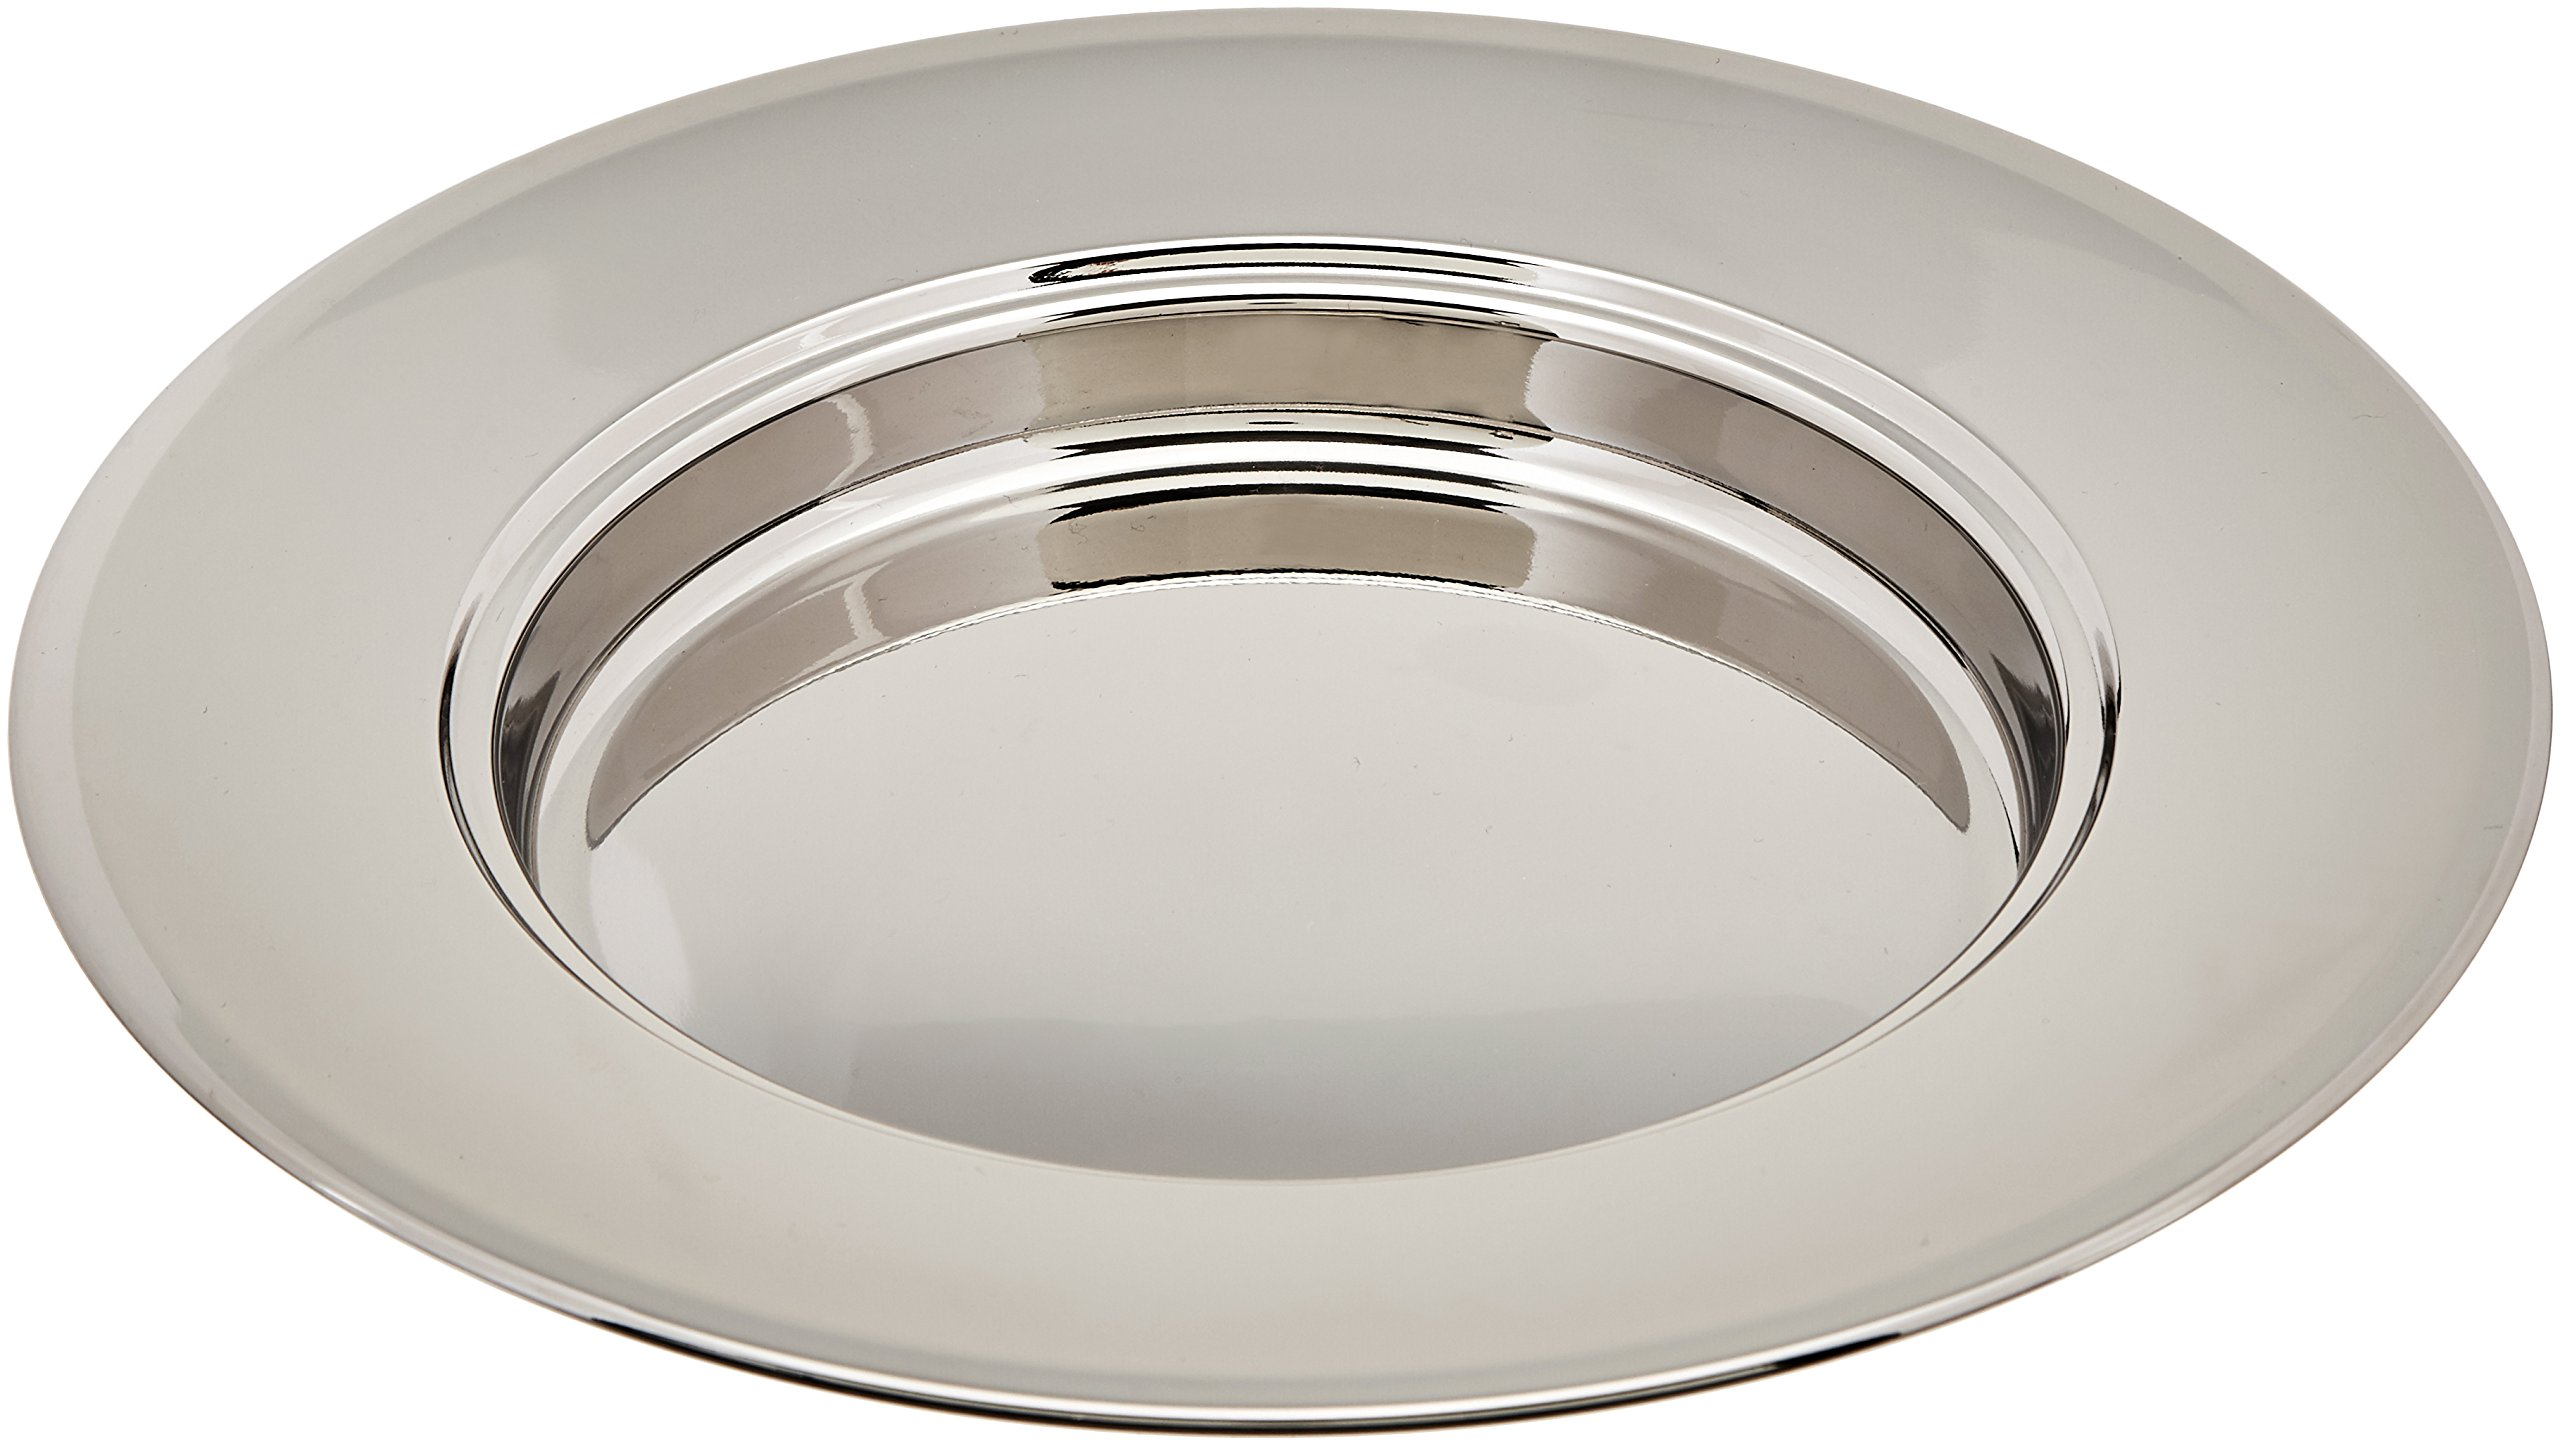 Stainless Steel Bread Plate (serves 40) - Remembranceware